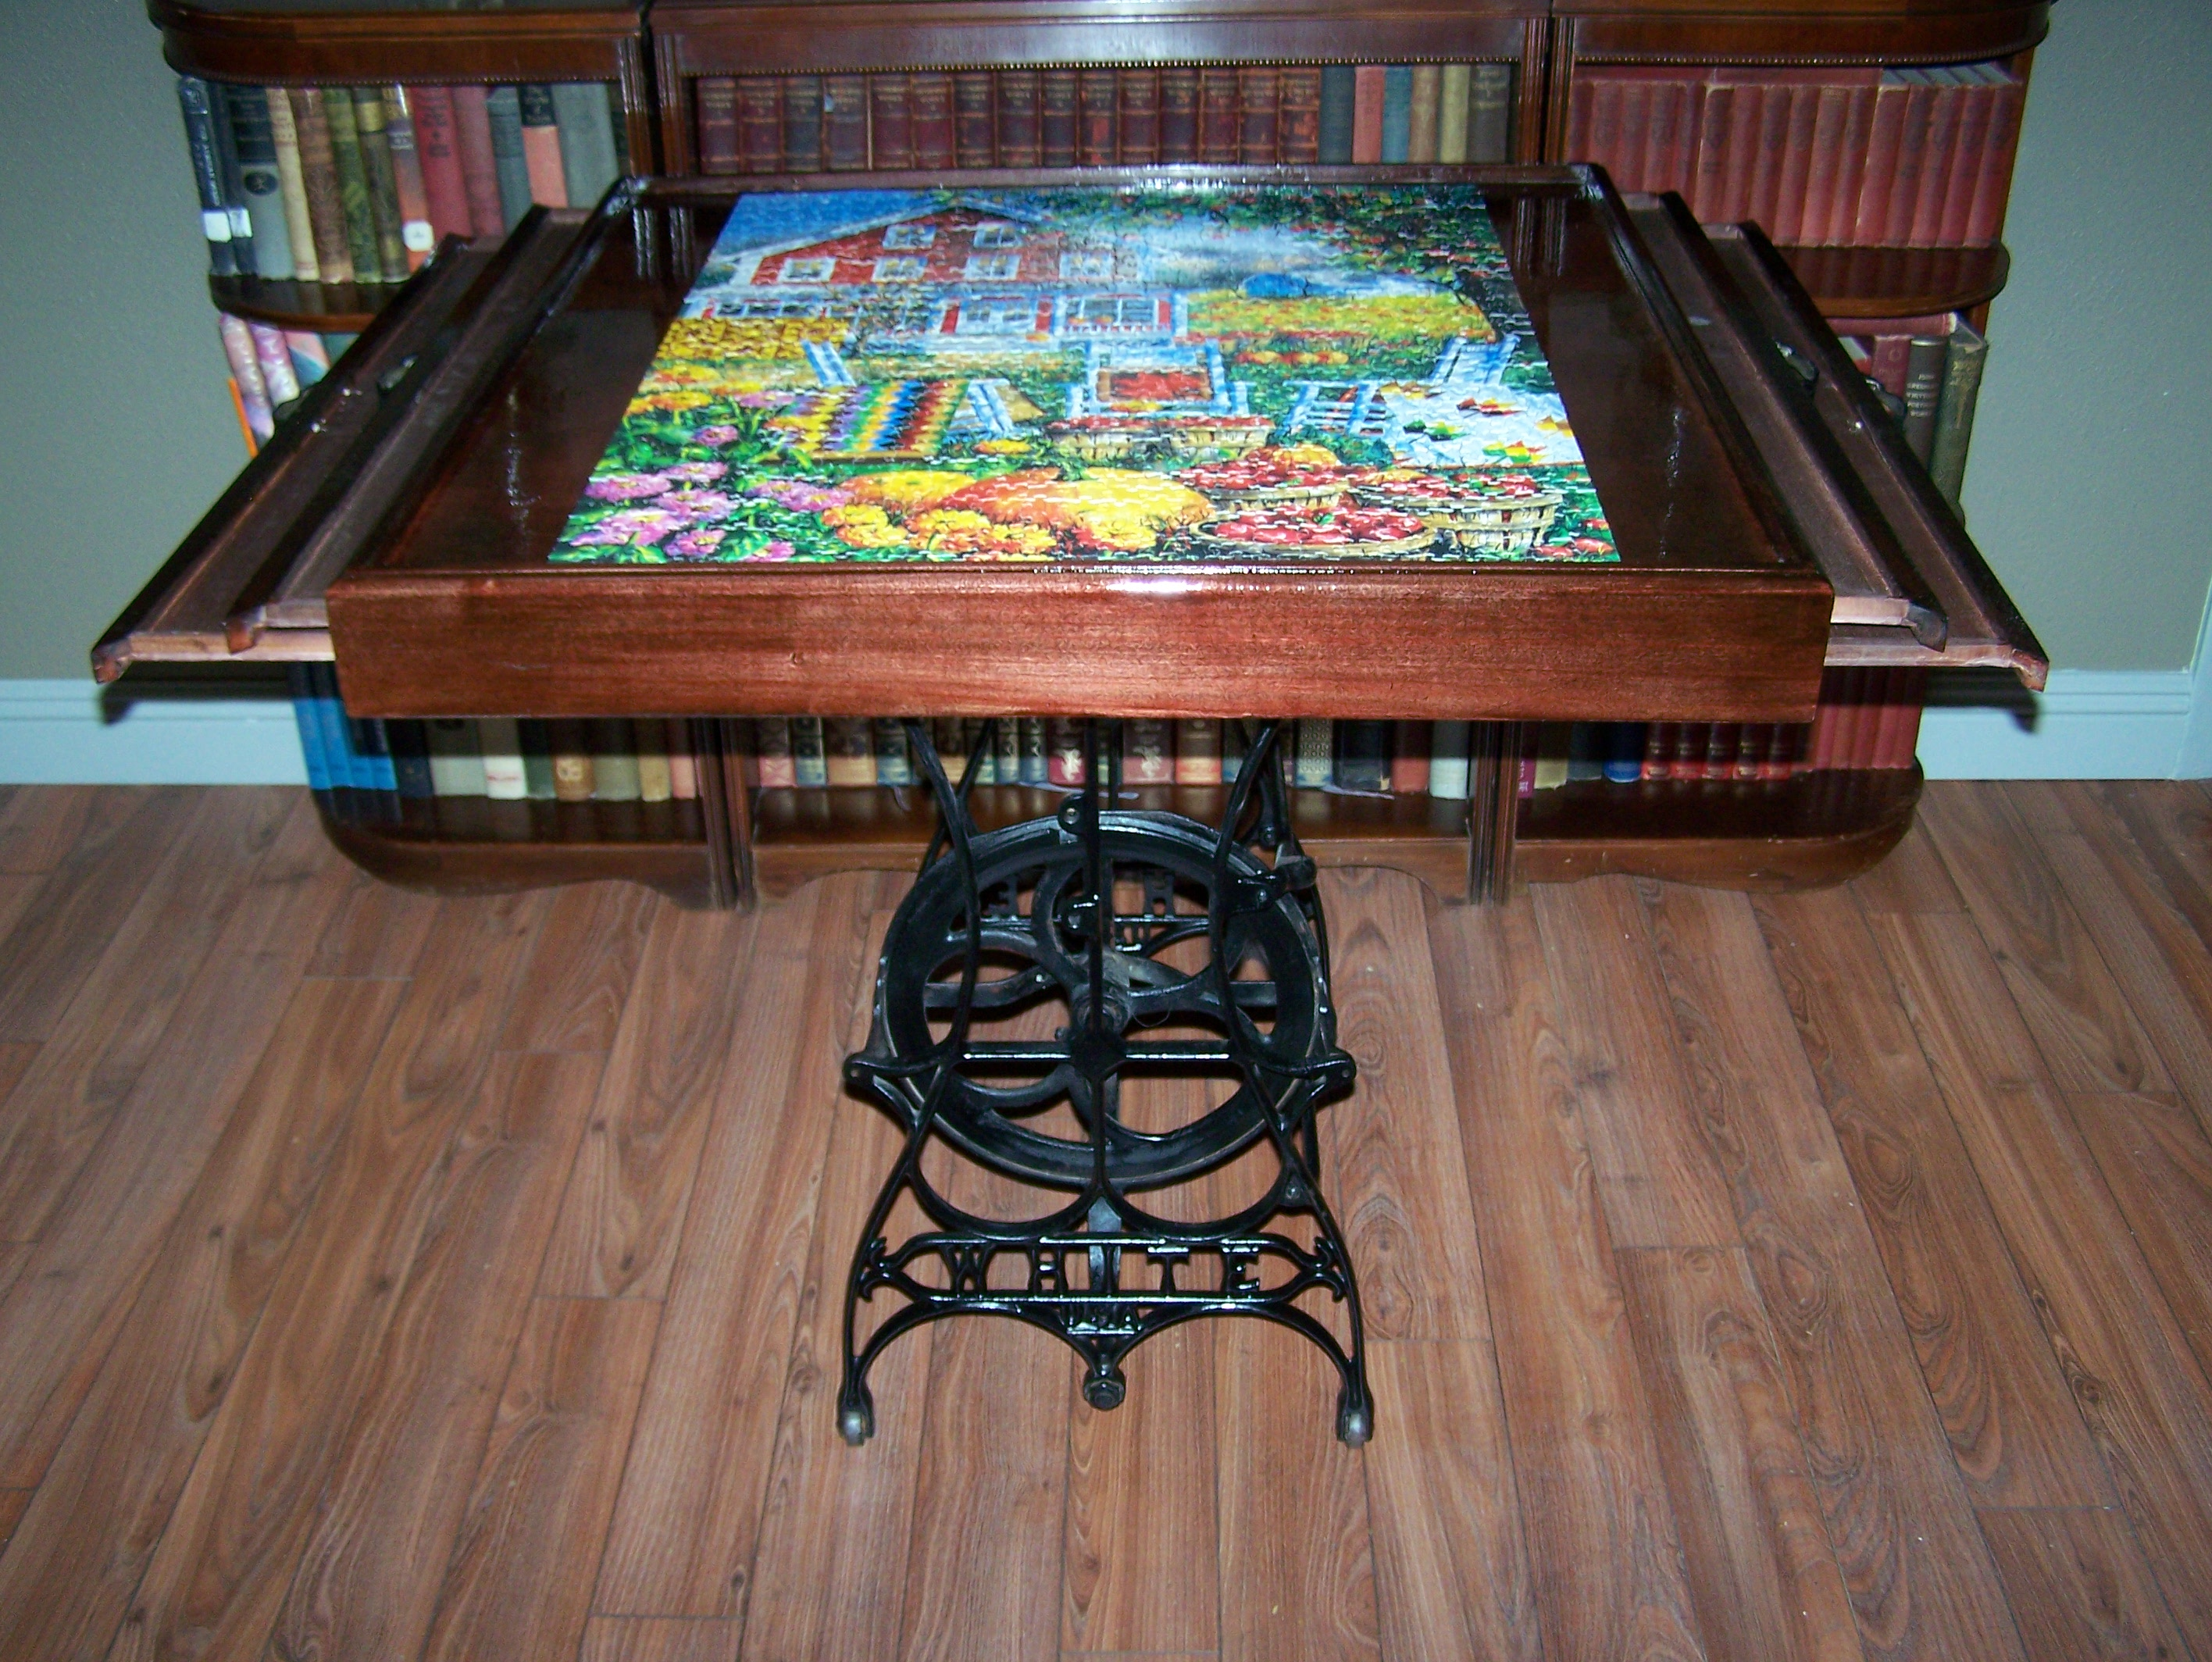 New And Improved Puzzle Making Table